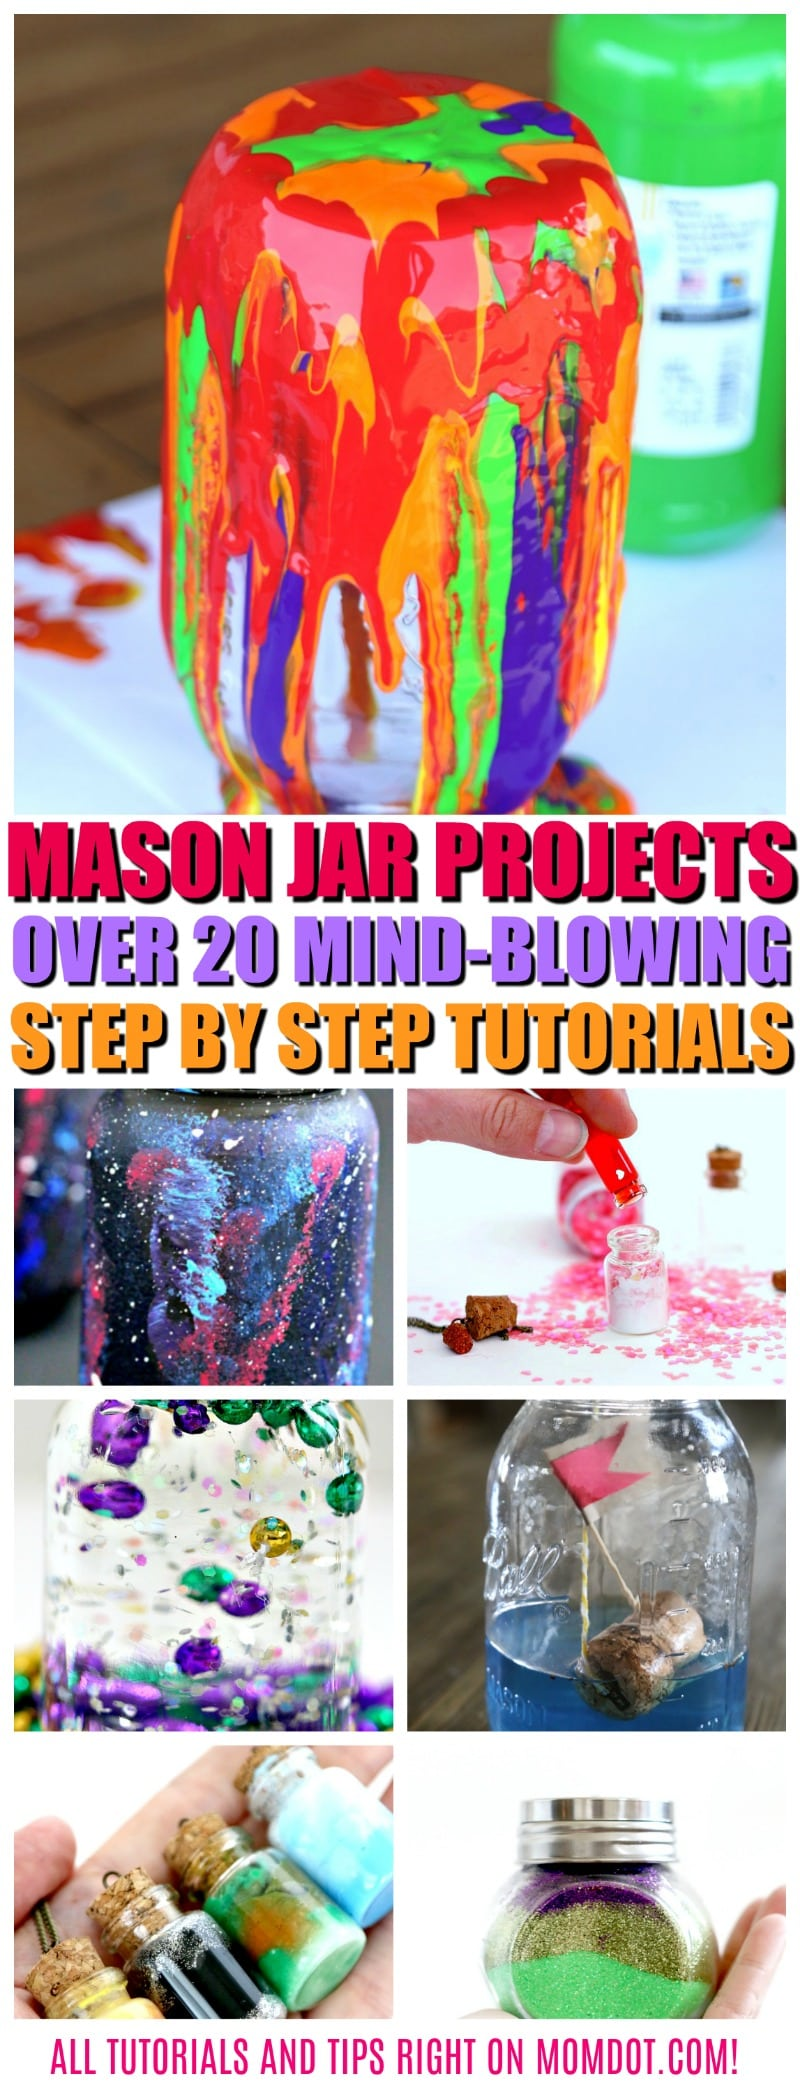 Mason Jar Projects: 20 Mind Blowing Ideas to Craft Today, all tutorials unique to MomDot and located right here!